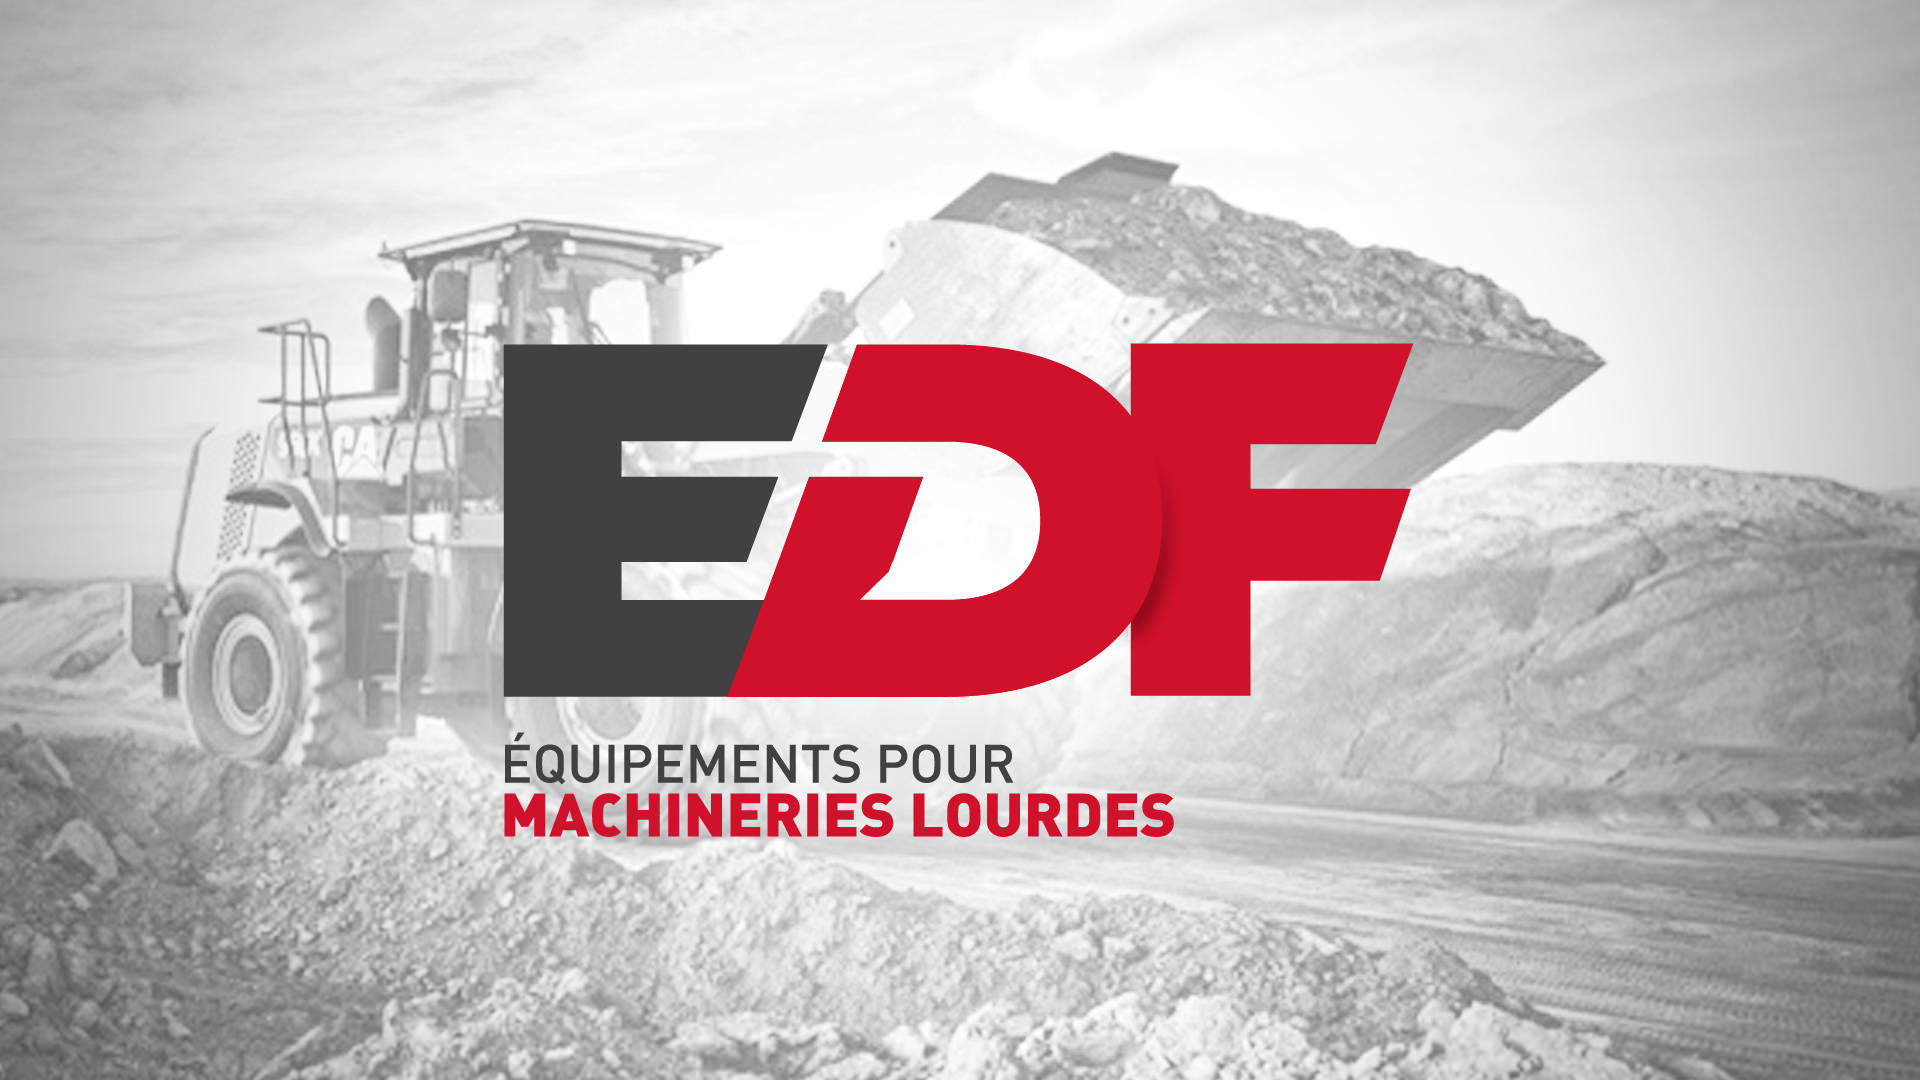 EDF-equipements-pour-machineries-lourdes-top